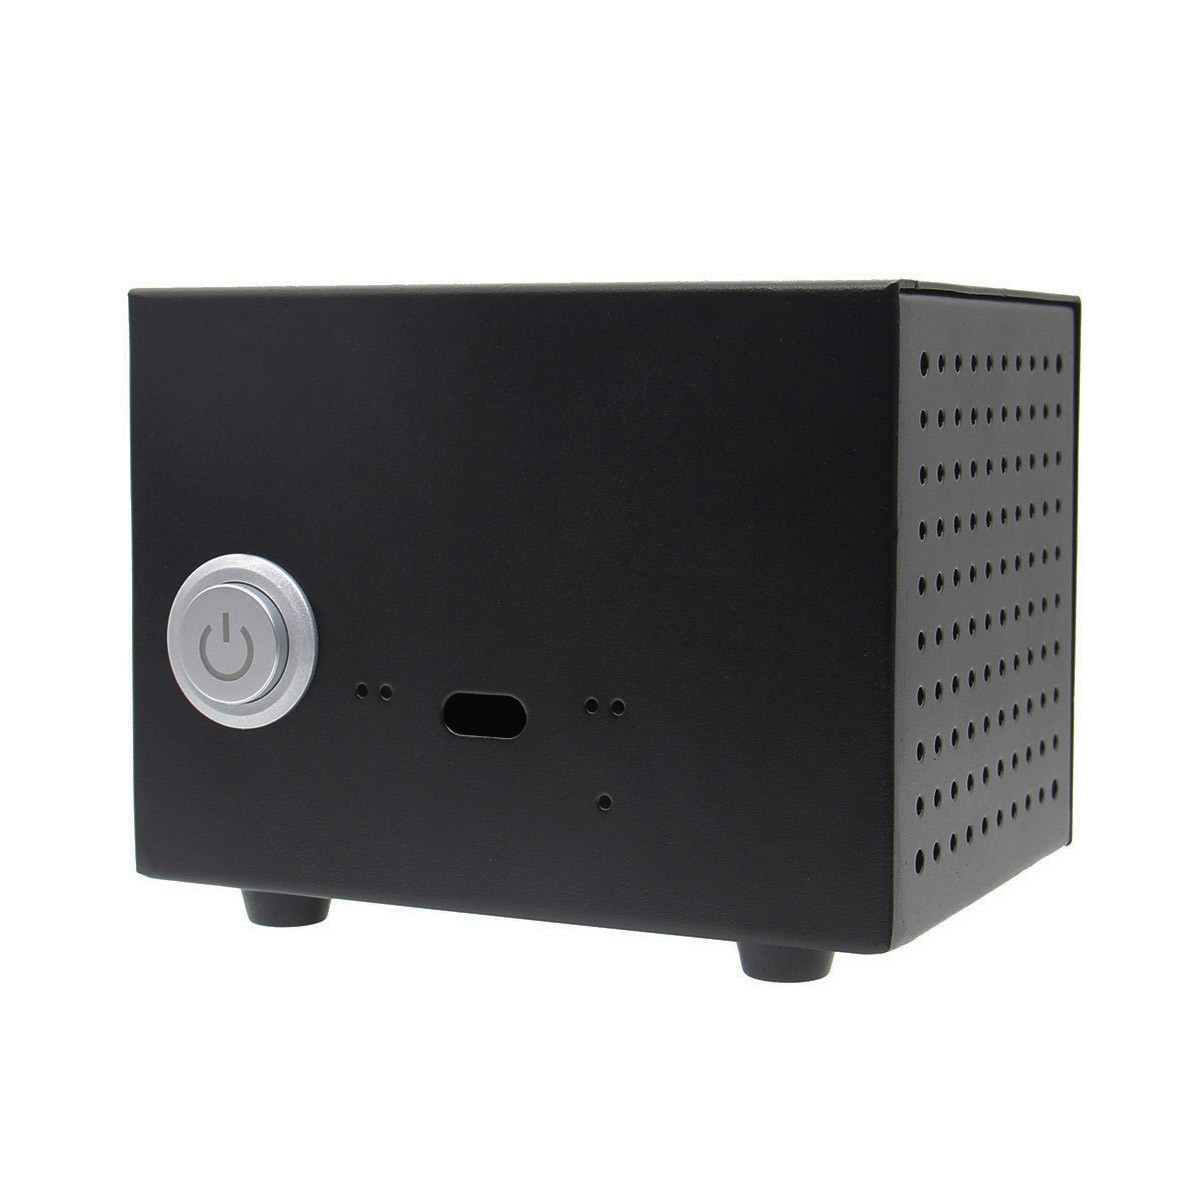 SUPTRONICS Metal Case with Button for Raspberry Pi and ST6000 / ST6000K / ST800 DAC